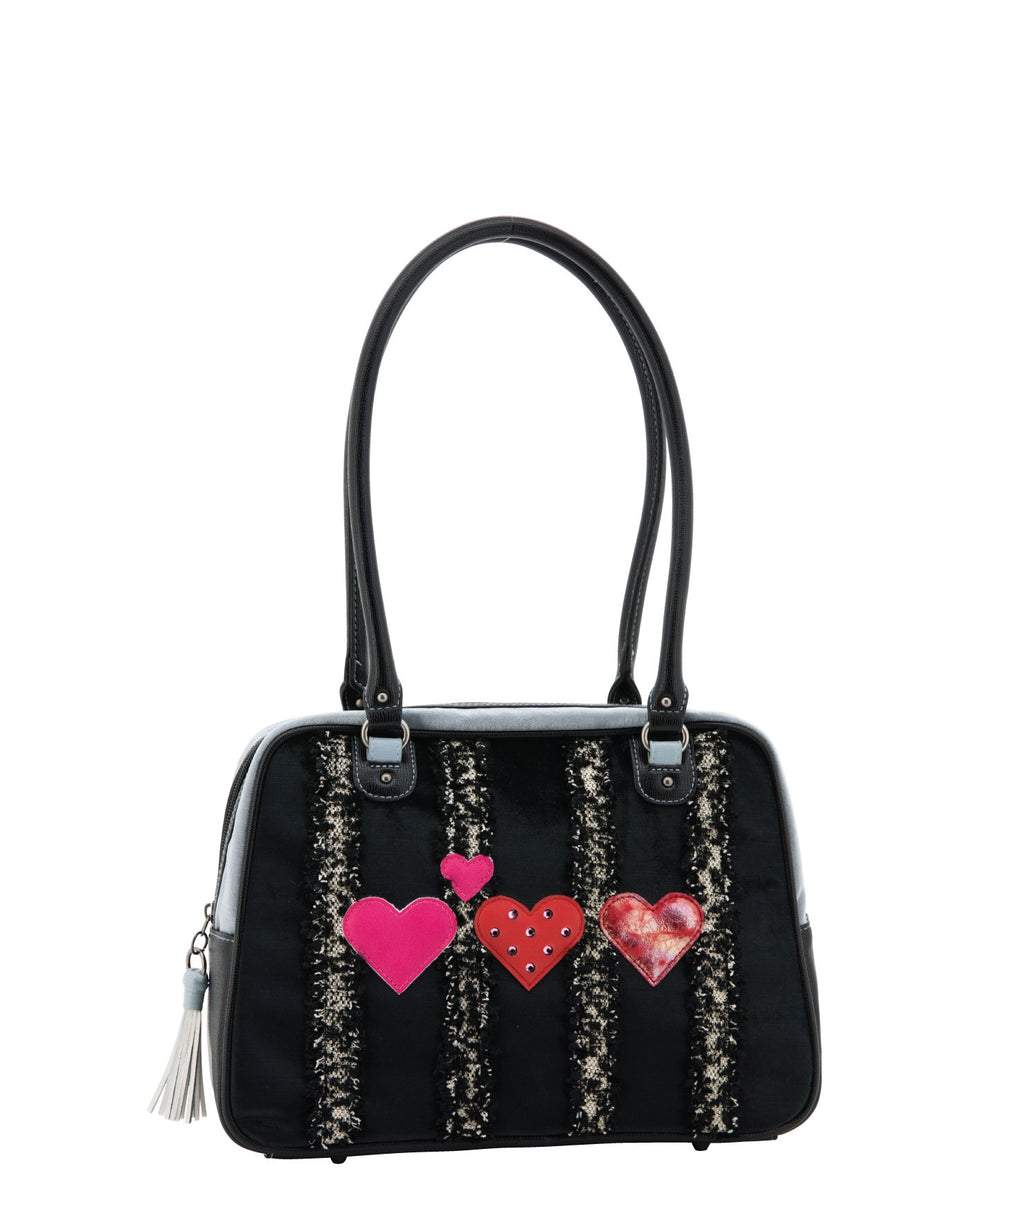 ZANDRA Shoulder Bag - Cherished